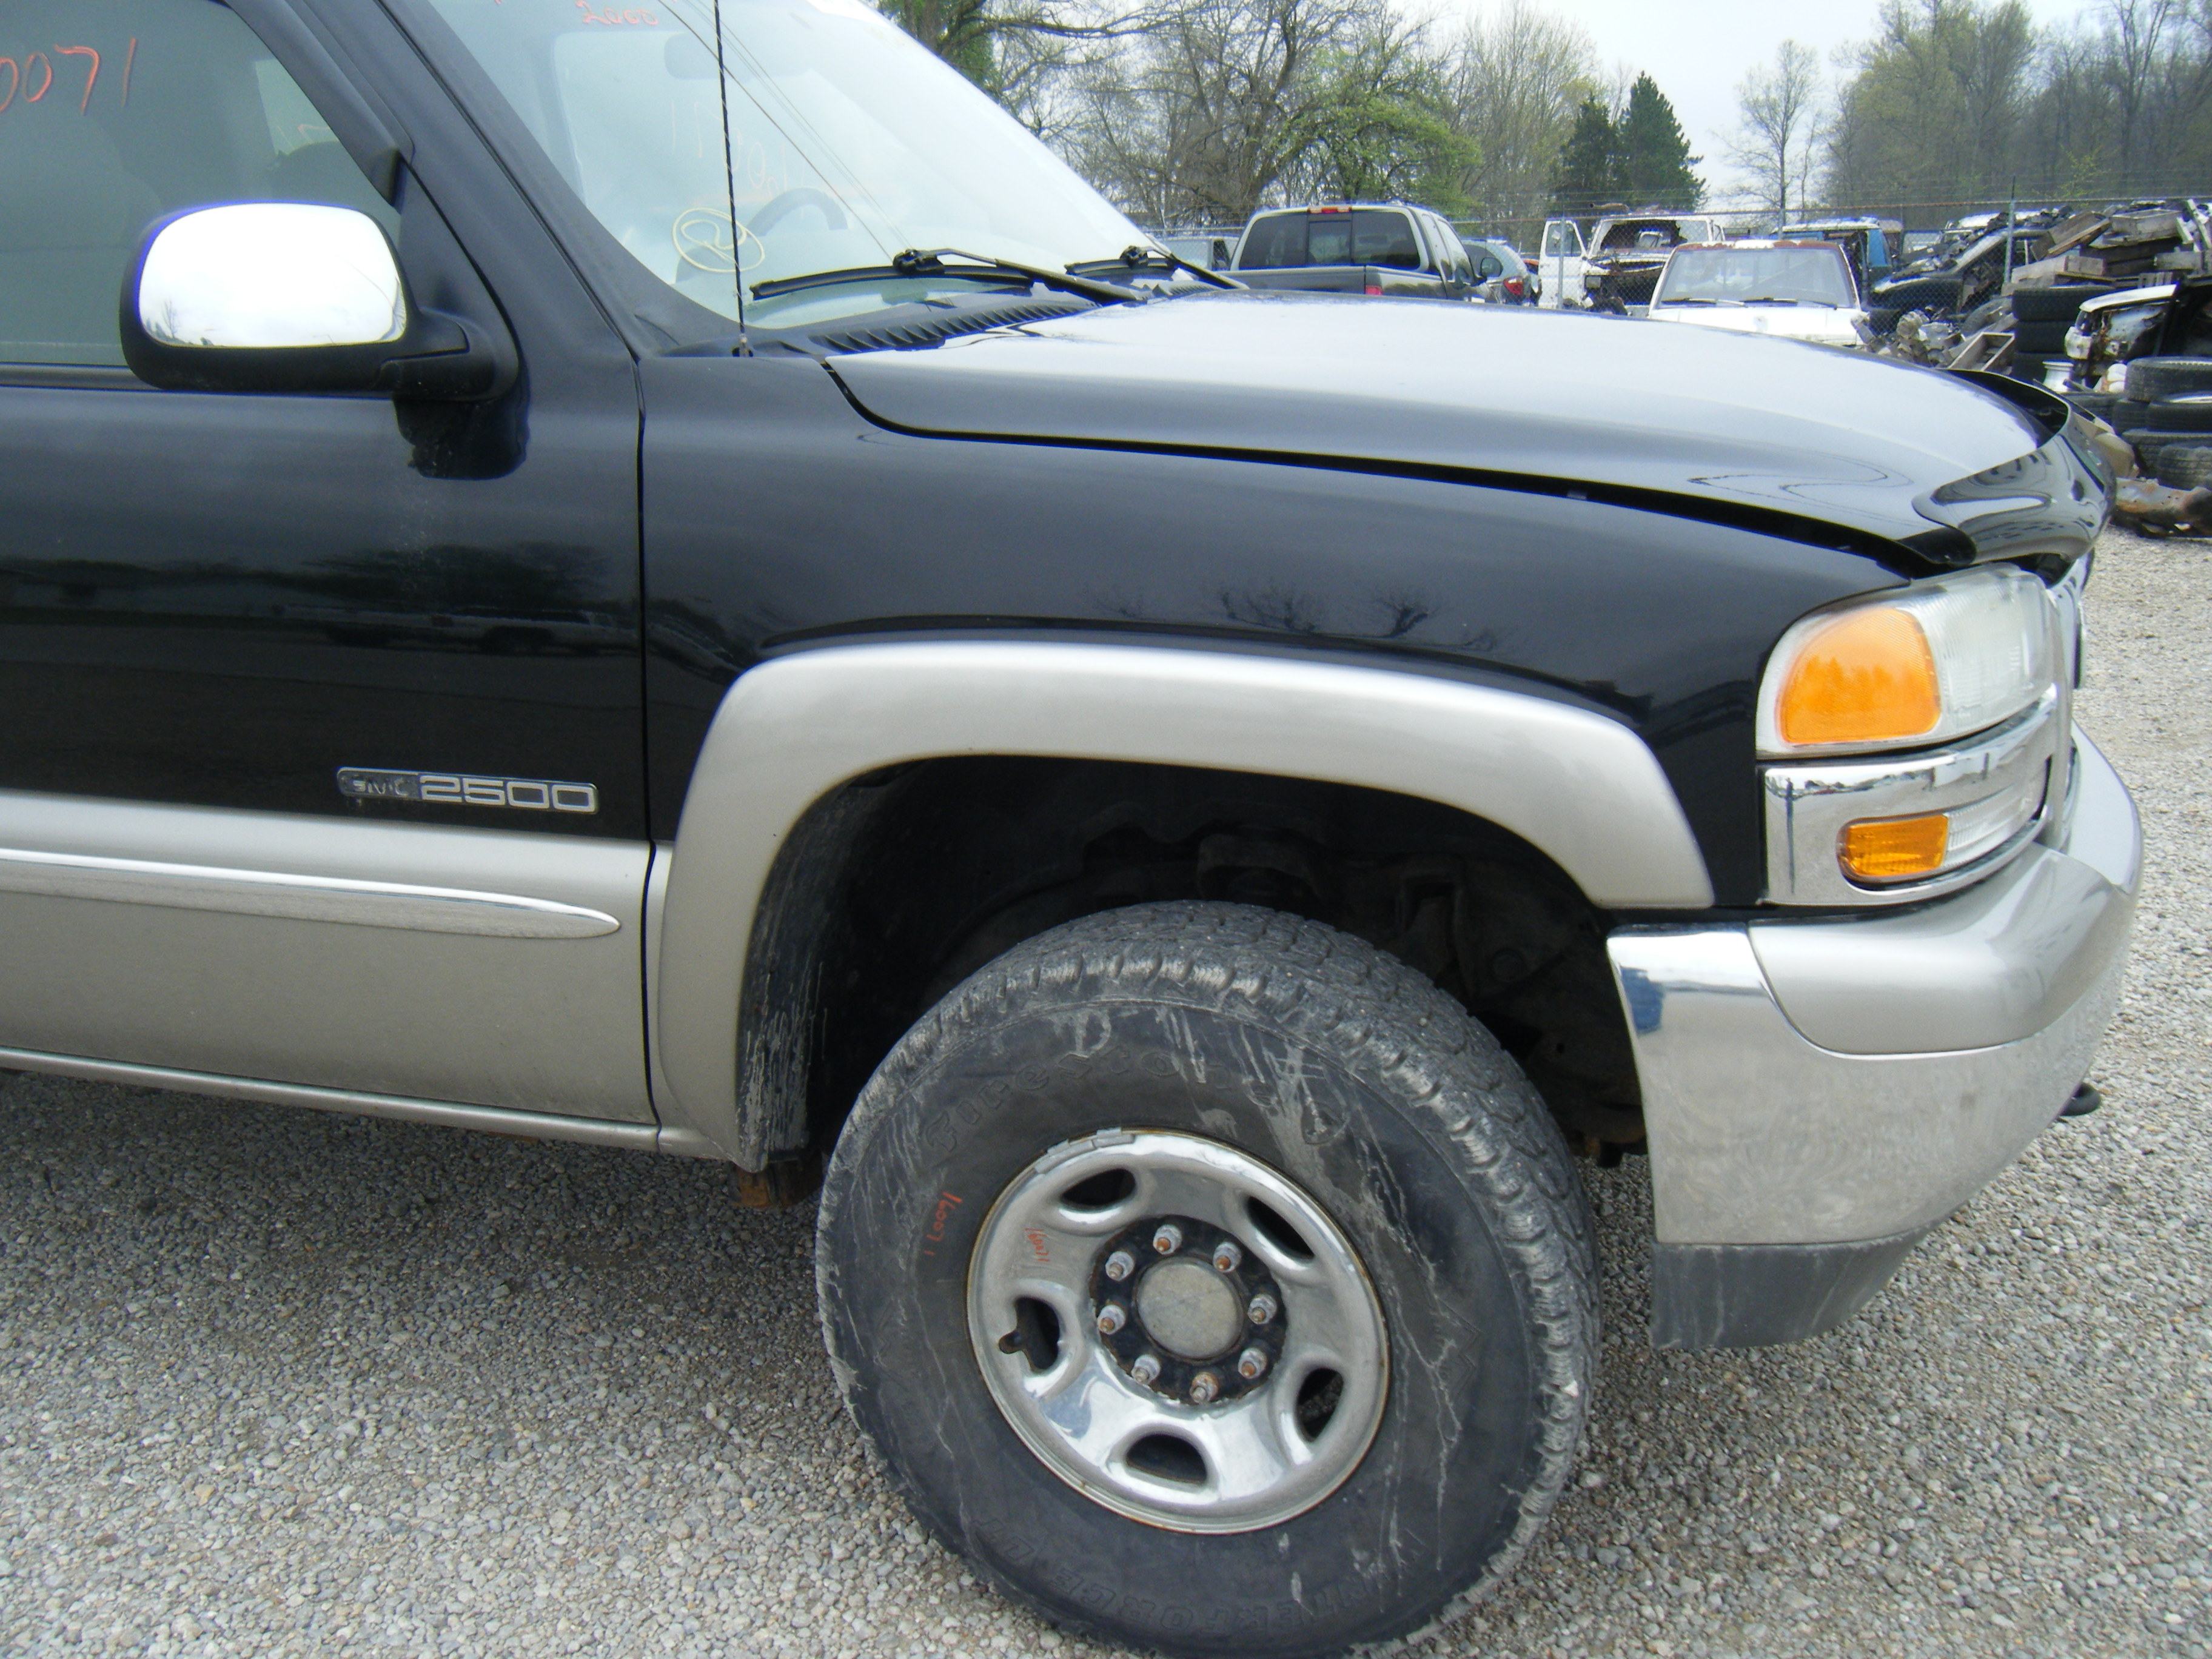 green vehicles crew oh truck sale cab al sle in gmc for bowling used sierra smith featured cars chrysler htm